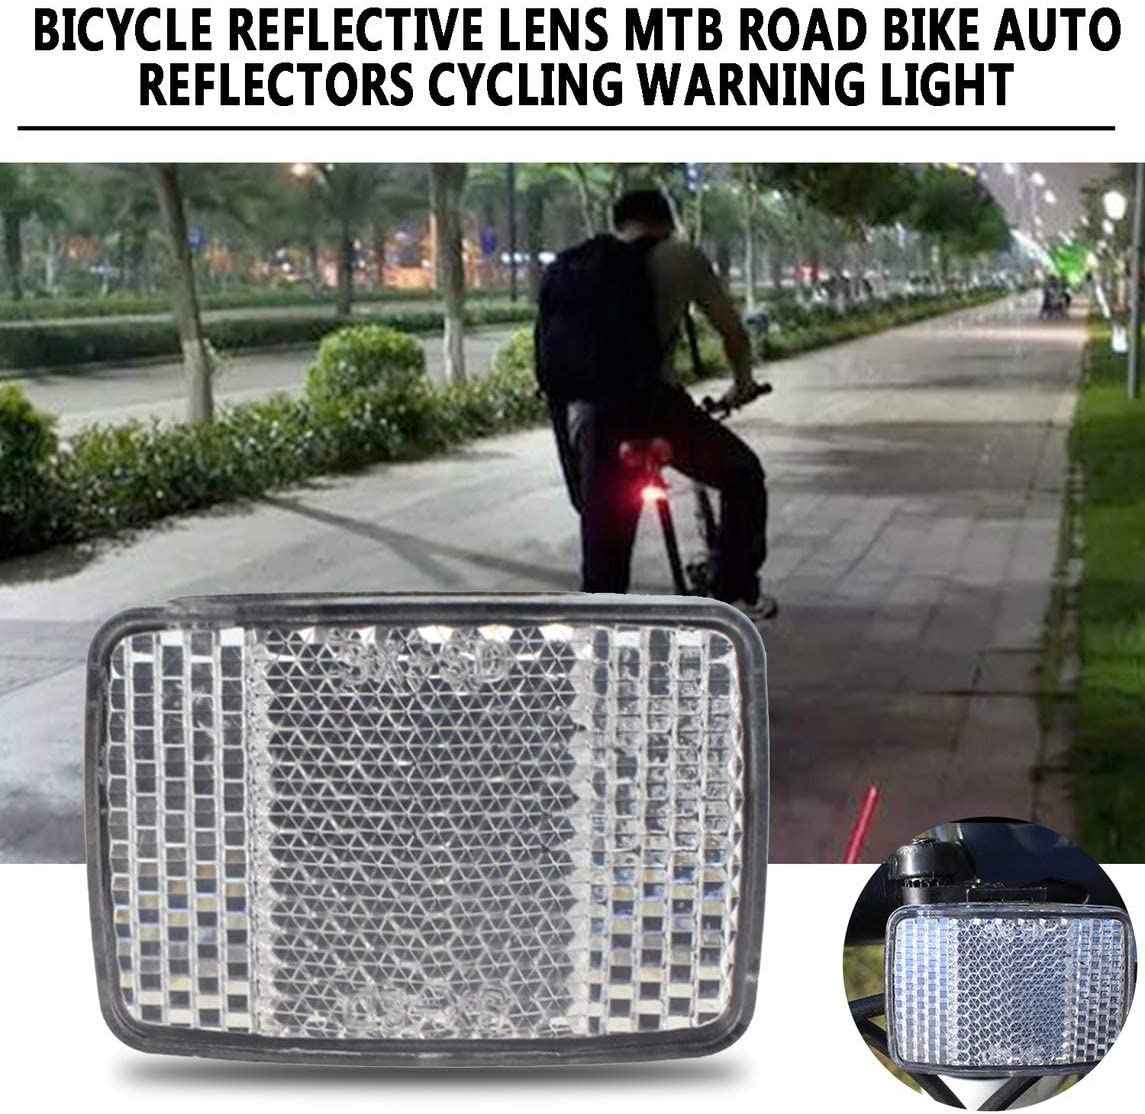 fgdjfhsdfgsdfh Bicycle Reflective Lens MTB Road Bike Automatic Reflectors Cycling Warning Light Bike Cycling Safety Accessories